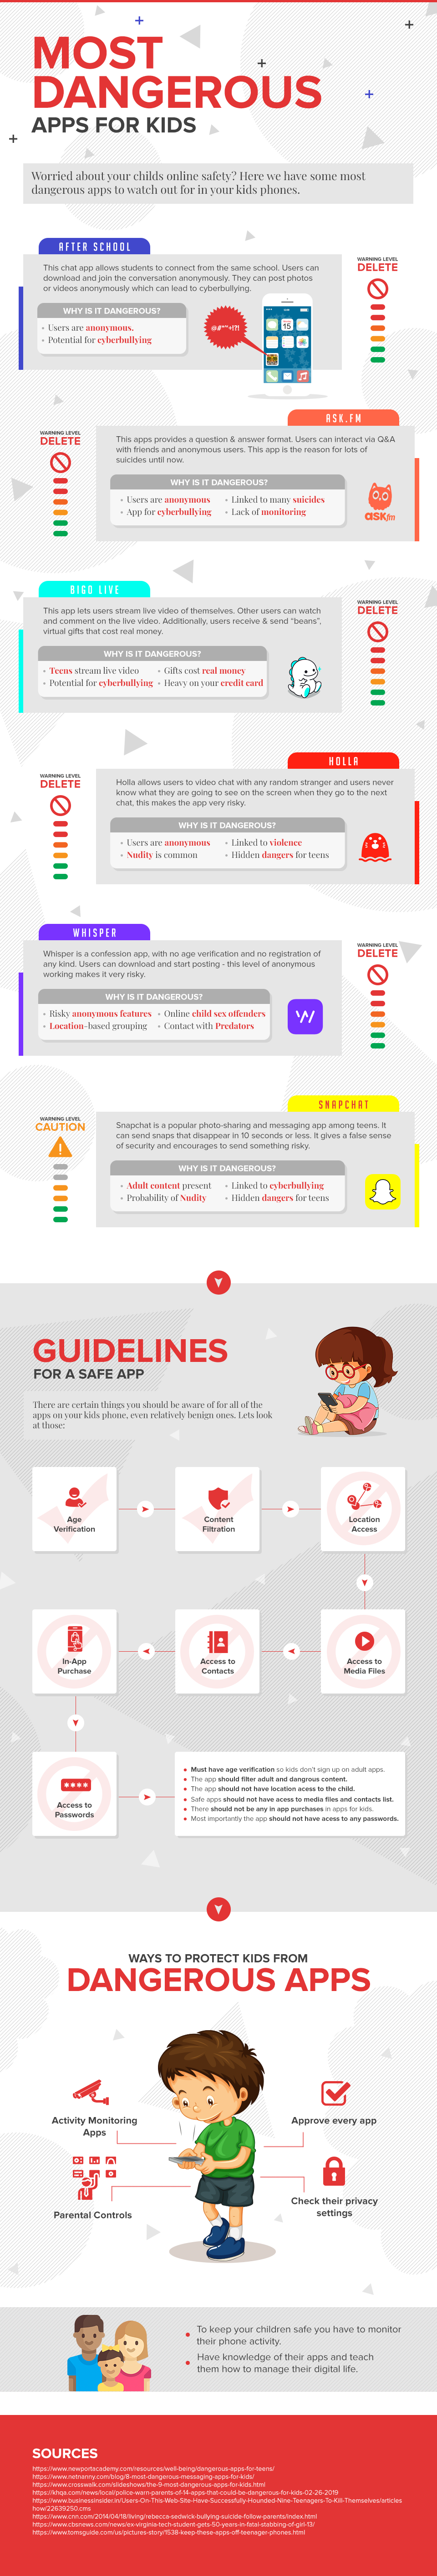 Harmful Mobile Apps for Children